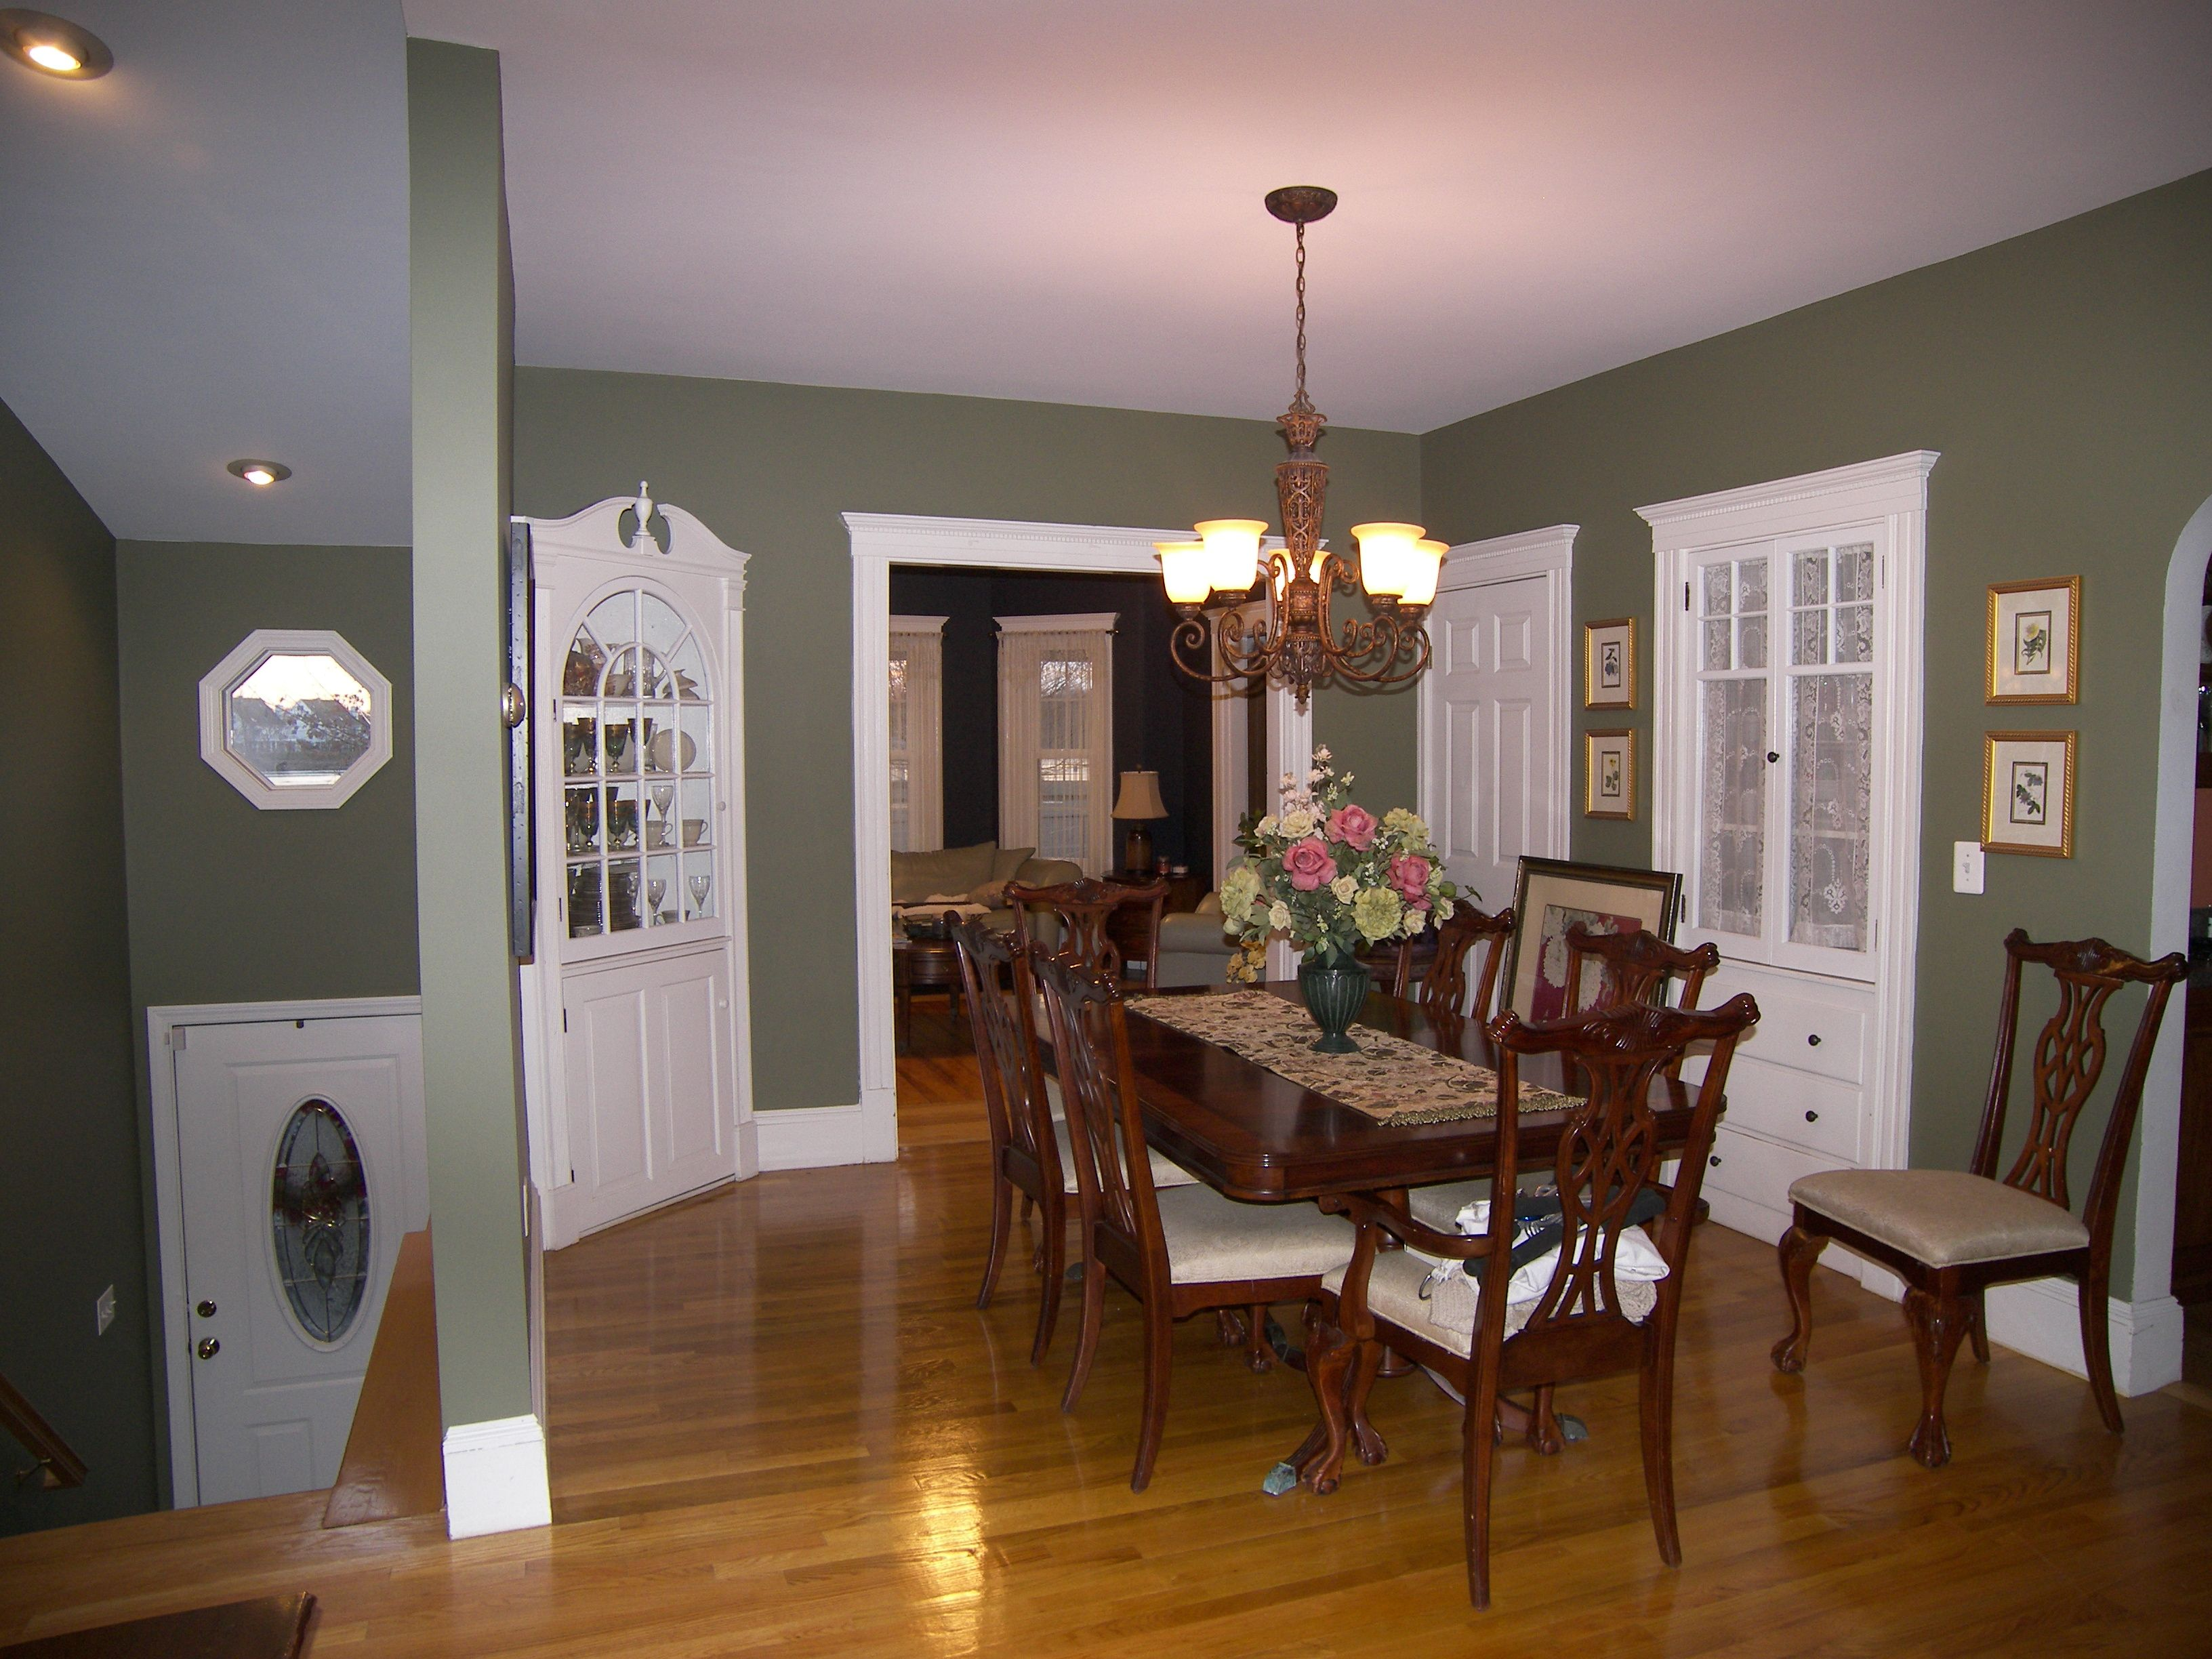 color: tate olive, new living room color. nice green color option